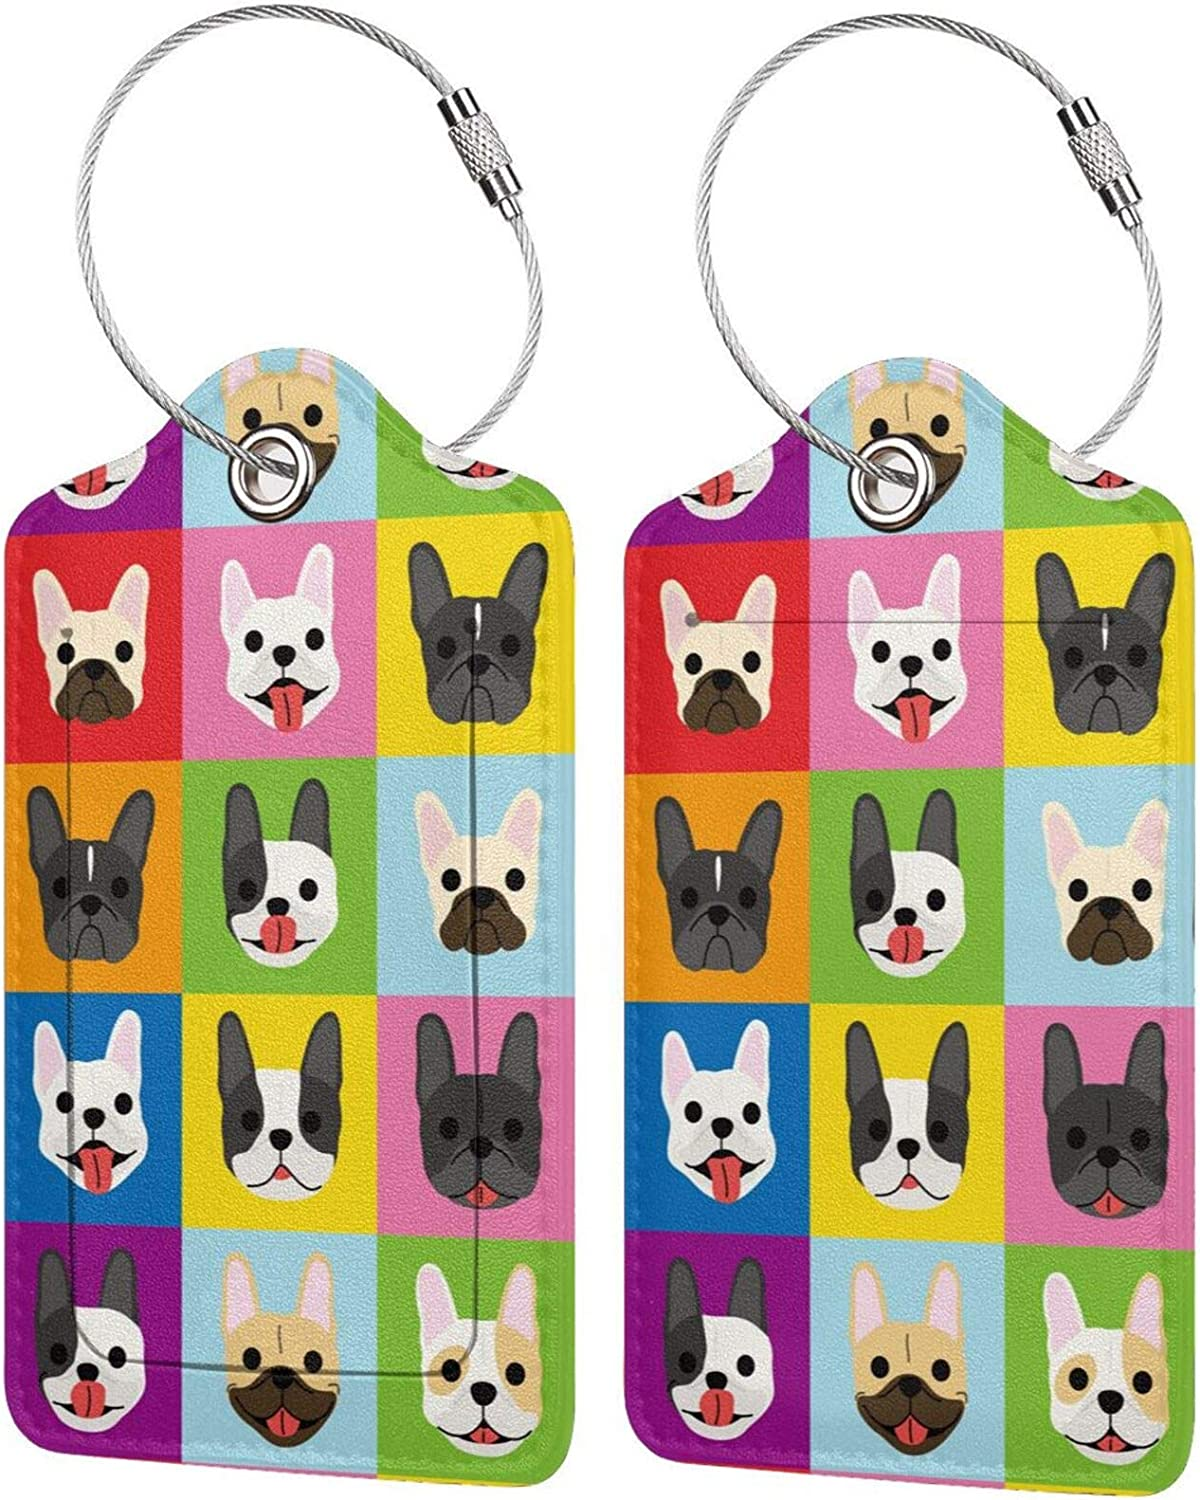 HHFASN Husky Eyes and Snowy A surprise price is realized firs in Luggage Max 79% OFF Winter 2-Pack Foggy